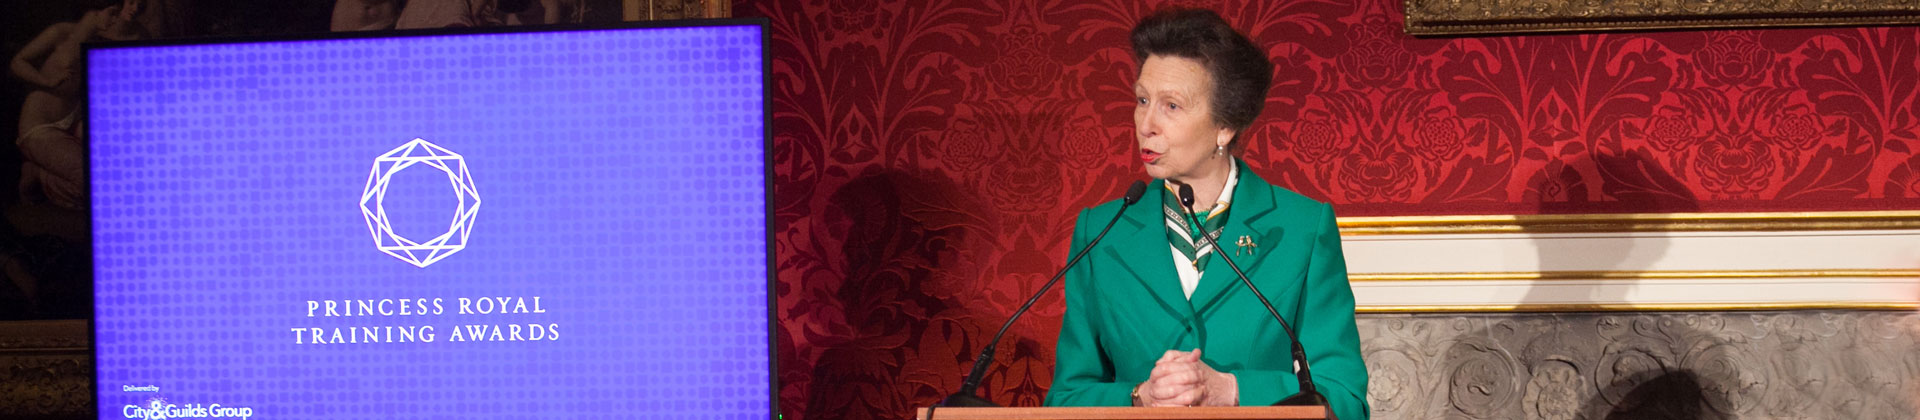 City & Guilds Group President HRH The Princess Royal at the Princess Royal Training Awards Ceremony 2016